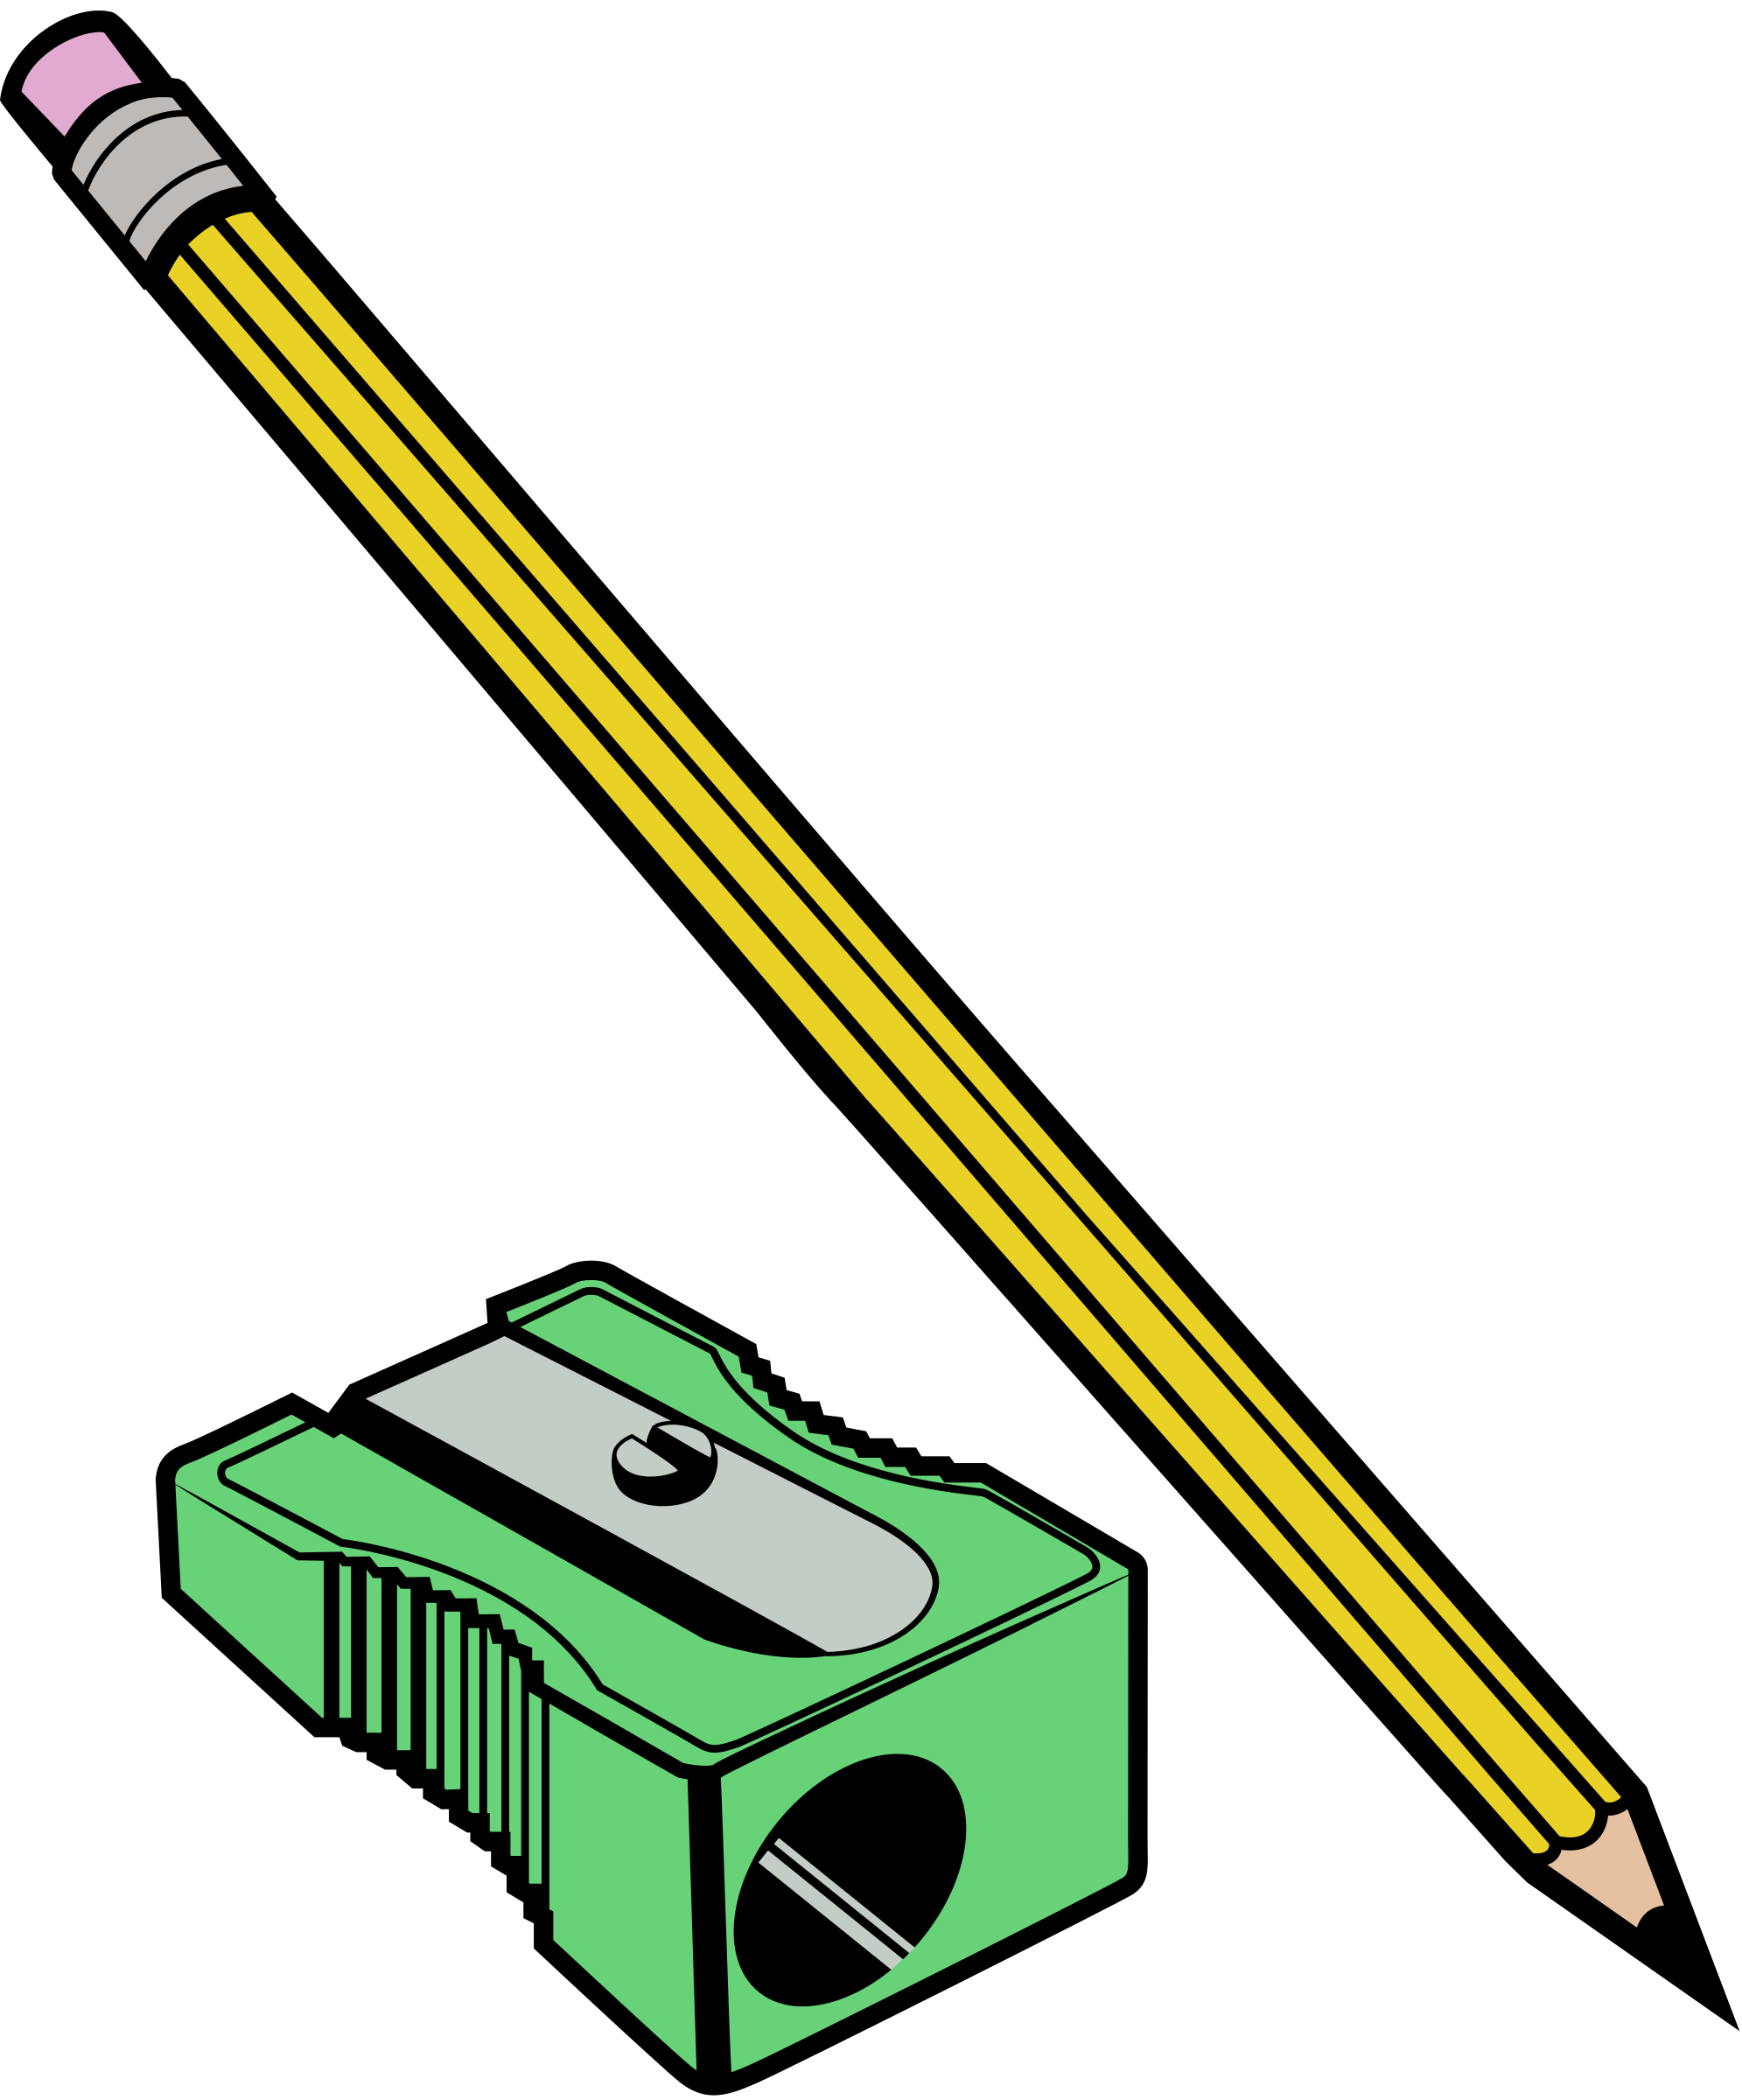 Sharpener clipart pencil. And colour big image